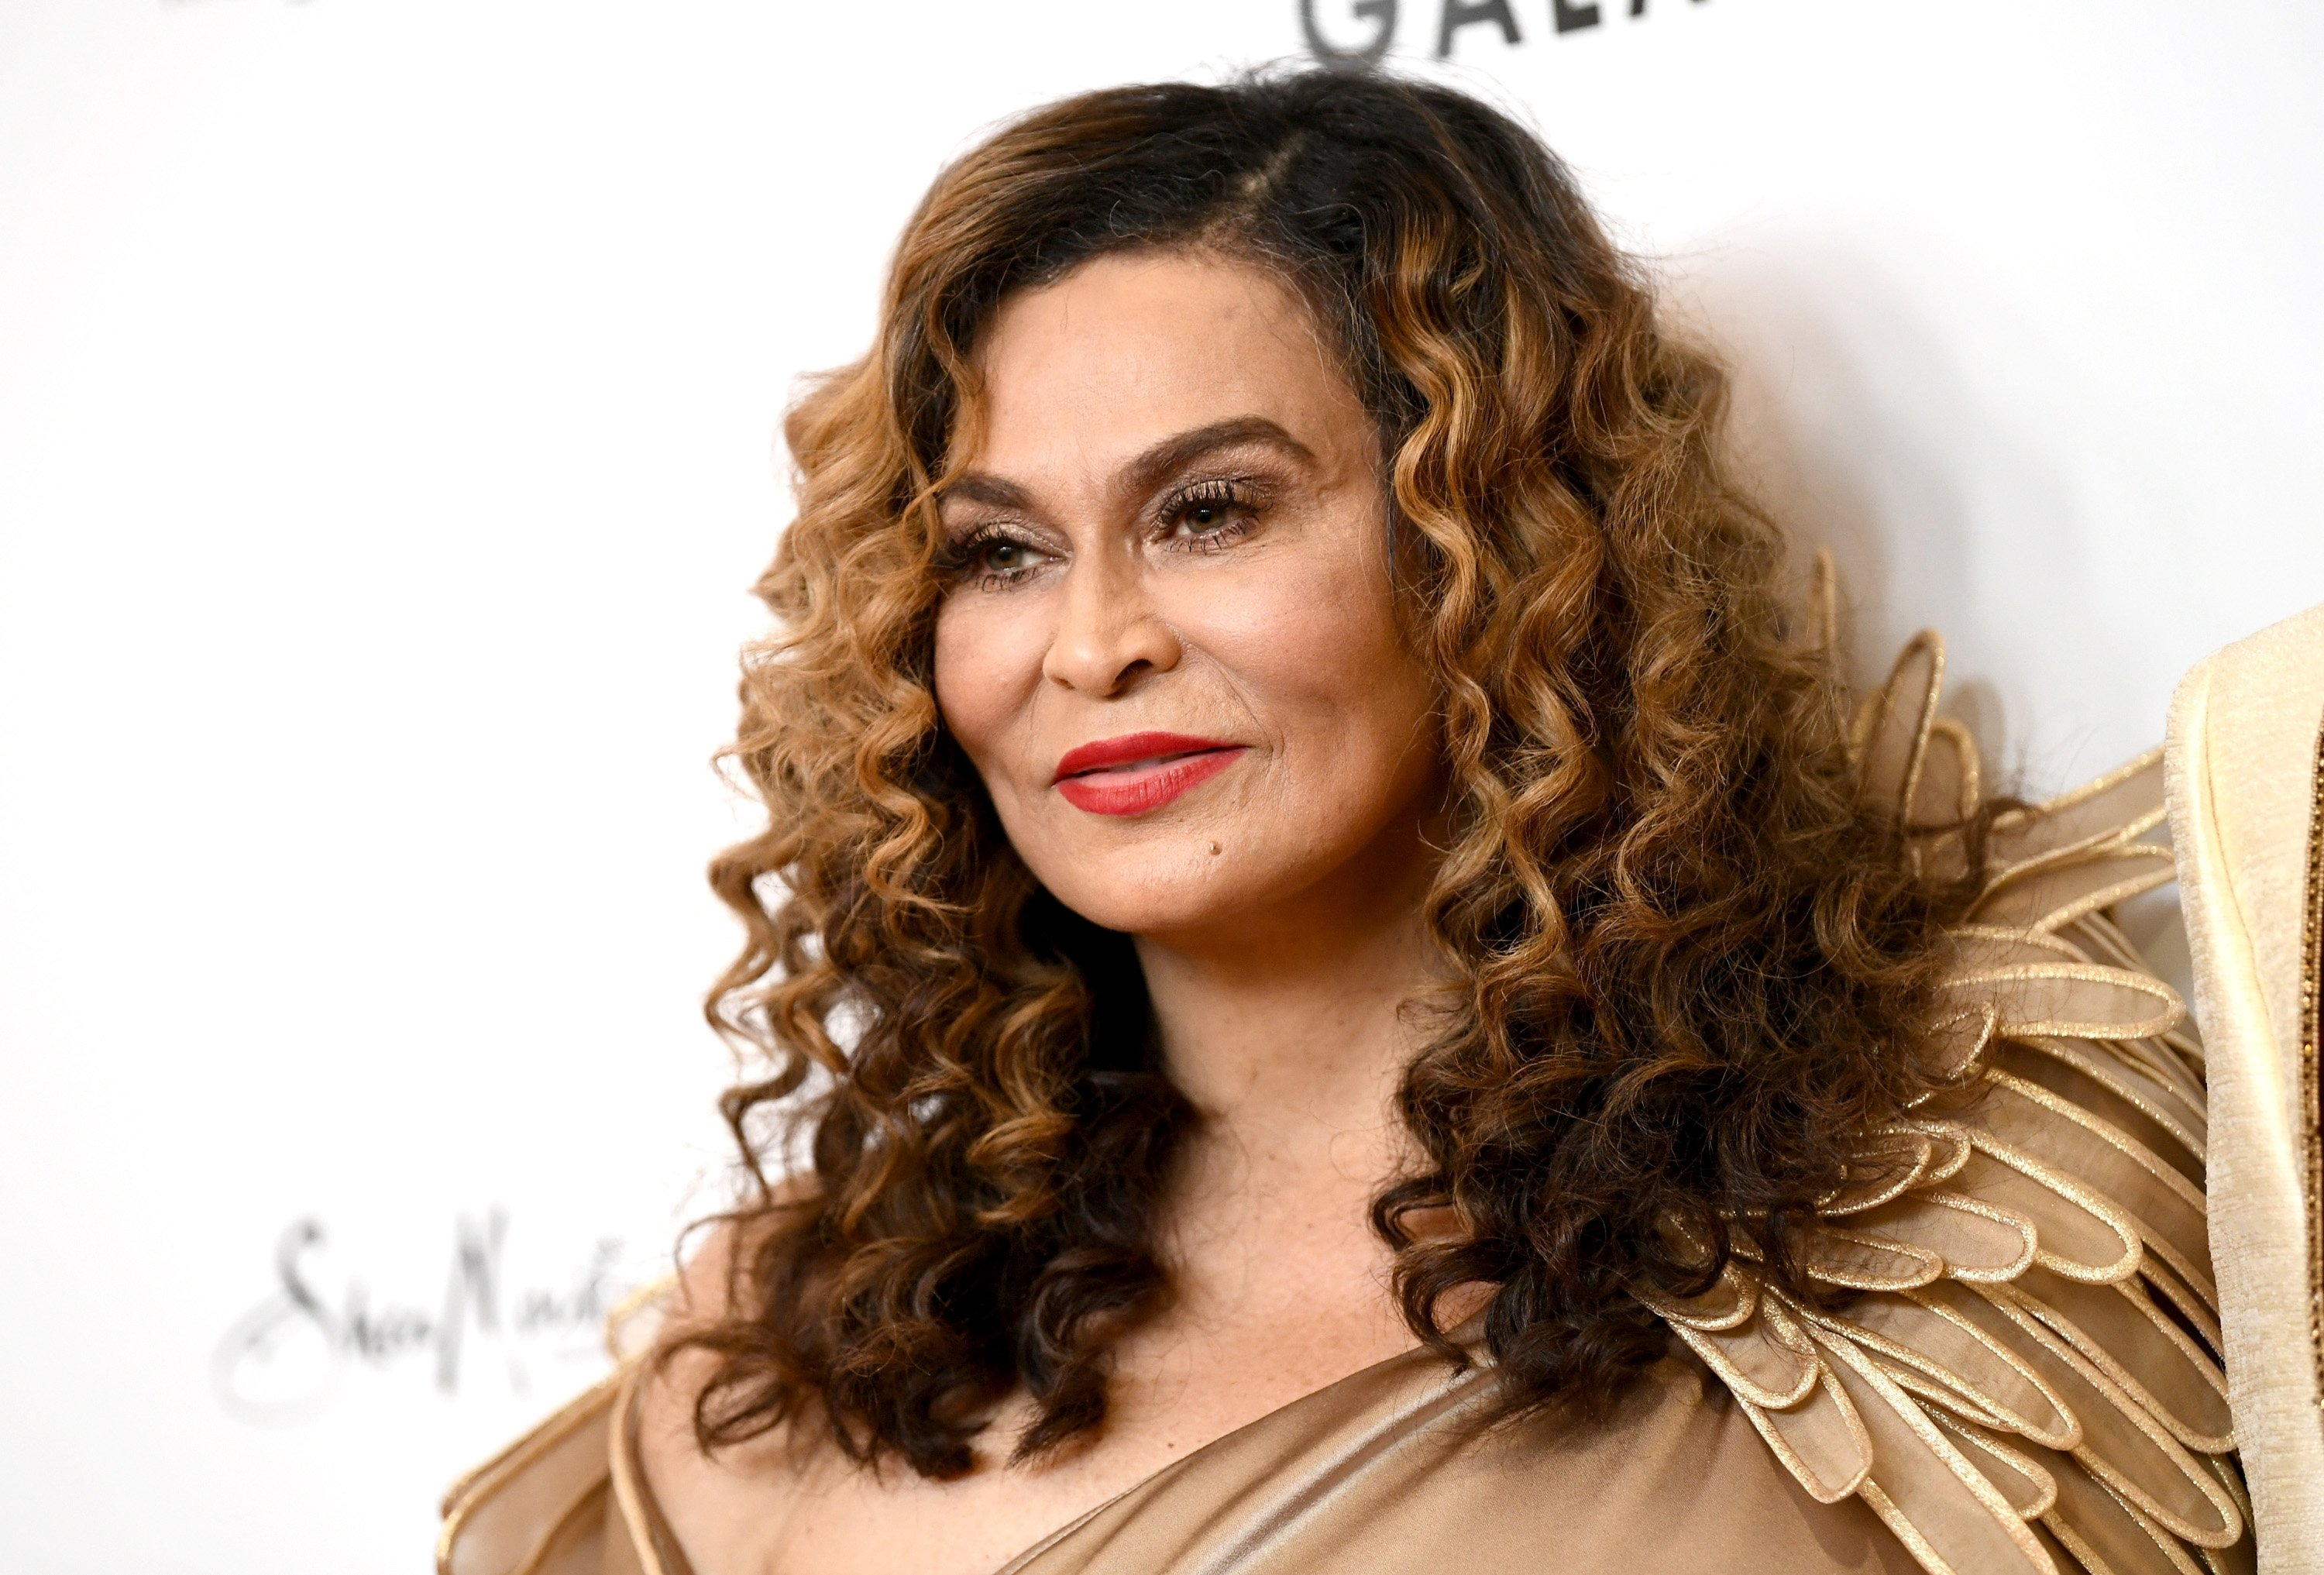 Tina Lawson at WACO Theatre's 2nd Annual Wearable Art Gala in March 2018. | Photo: Getty Images